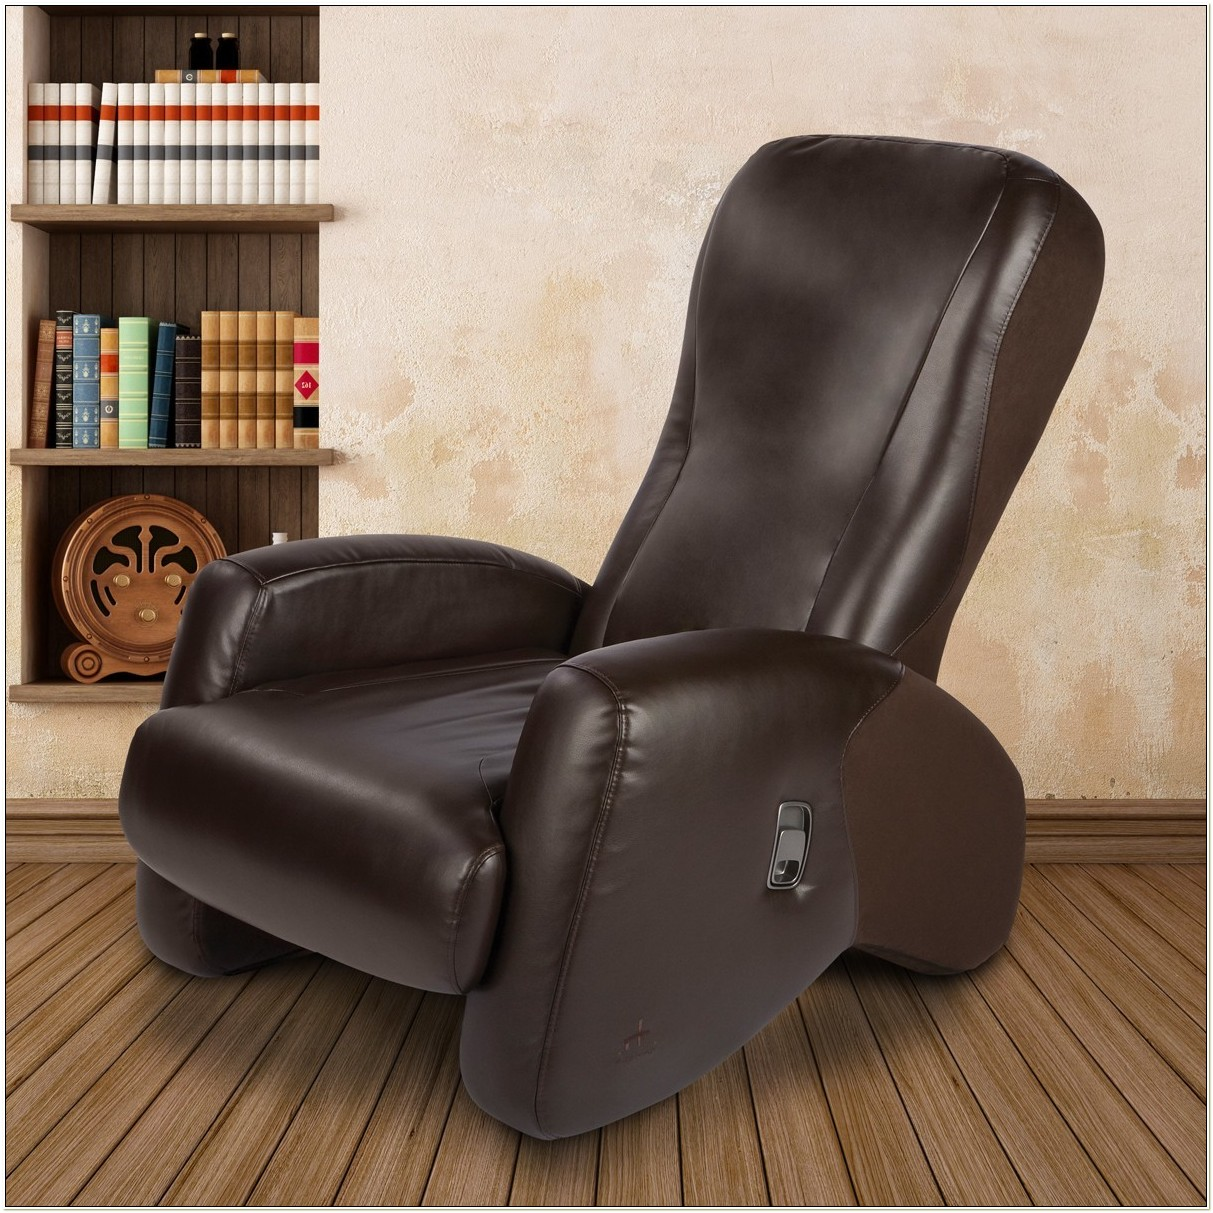 Sharper Image Ijoy Massage Chair Manual